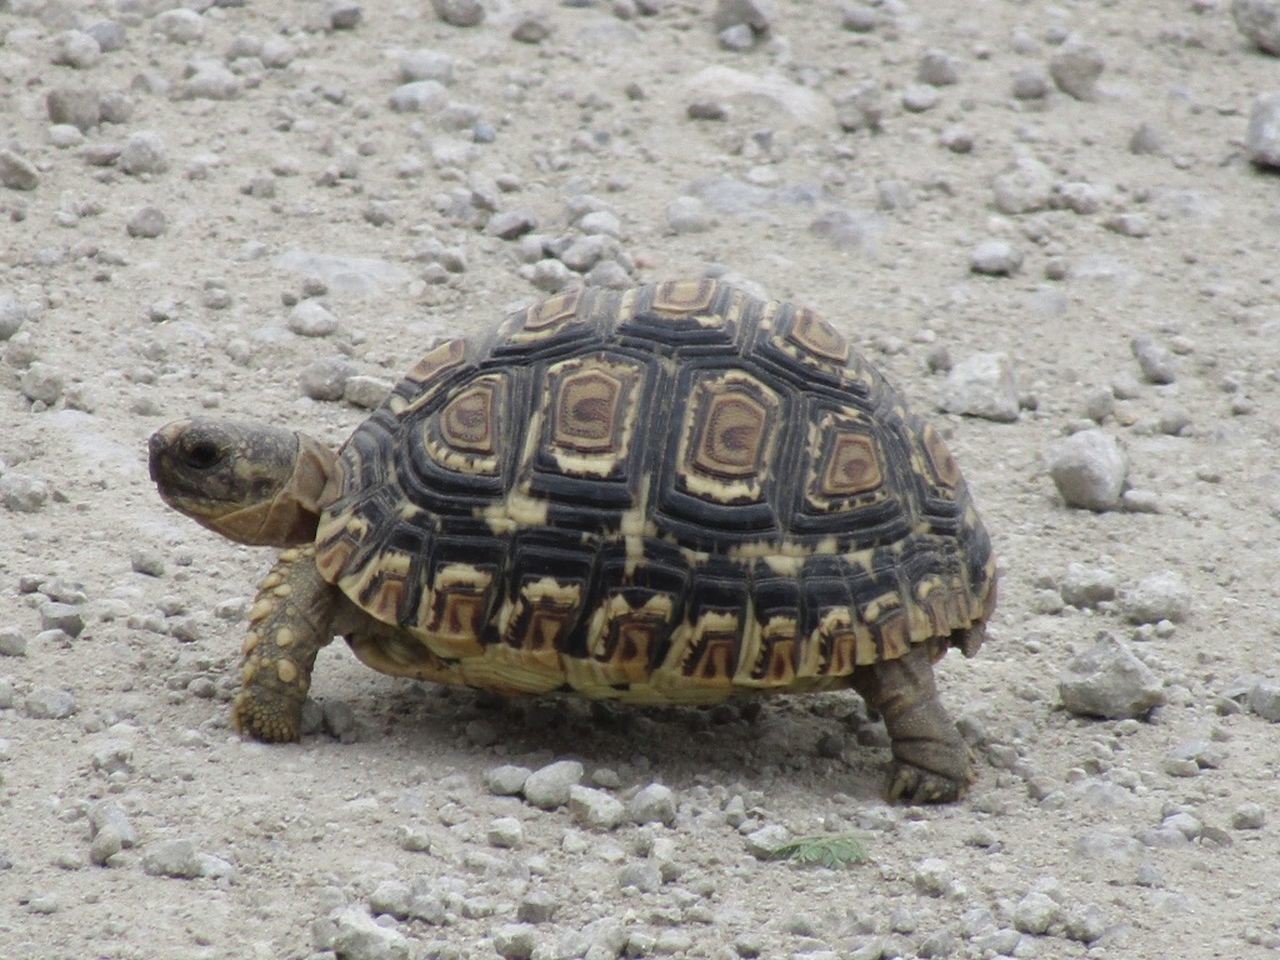 Animal Themes Animal Wildlife Animals In The Wild Close-up Day Nature No People One Animal Outdoors Reptile Sand Sea Life Sea Turtle Tortoise Tortoise Shell Turtle